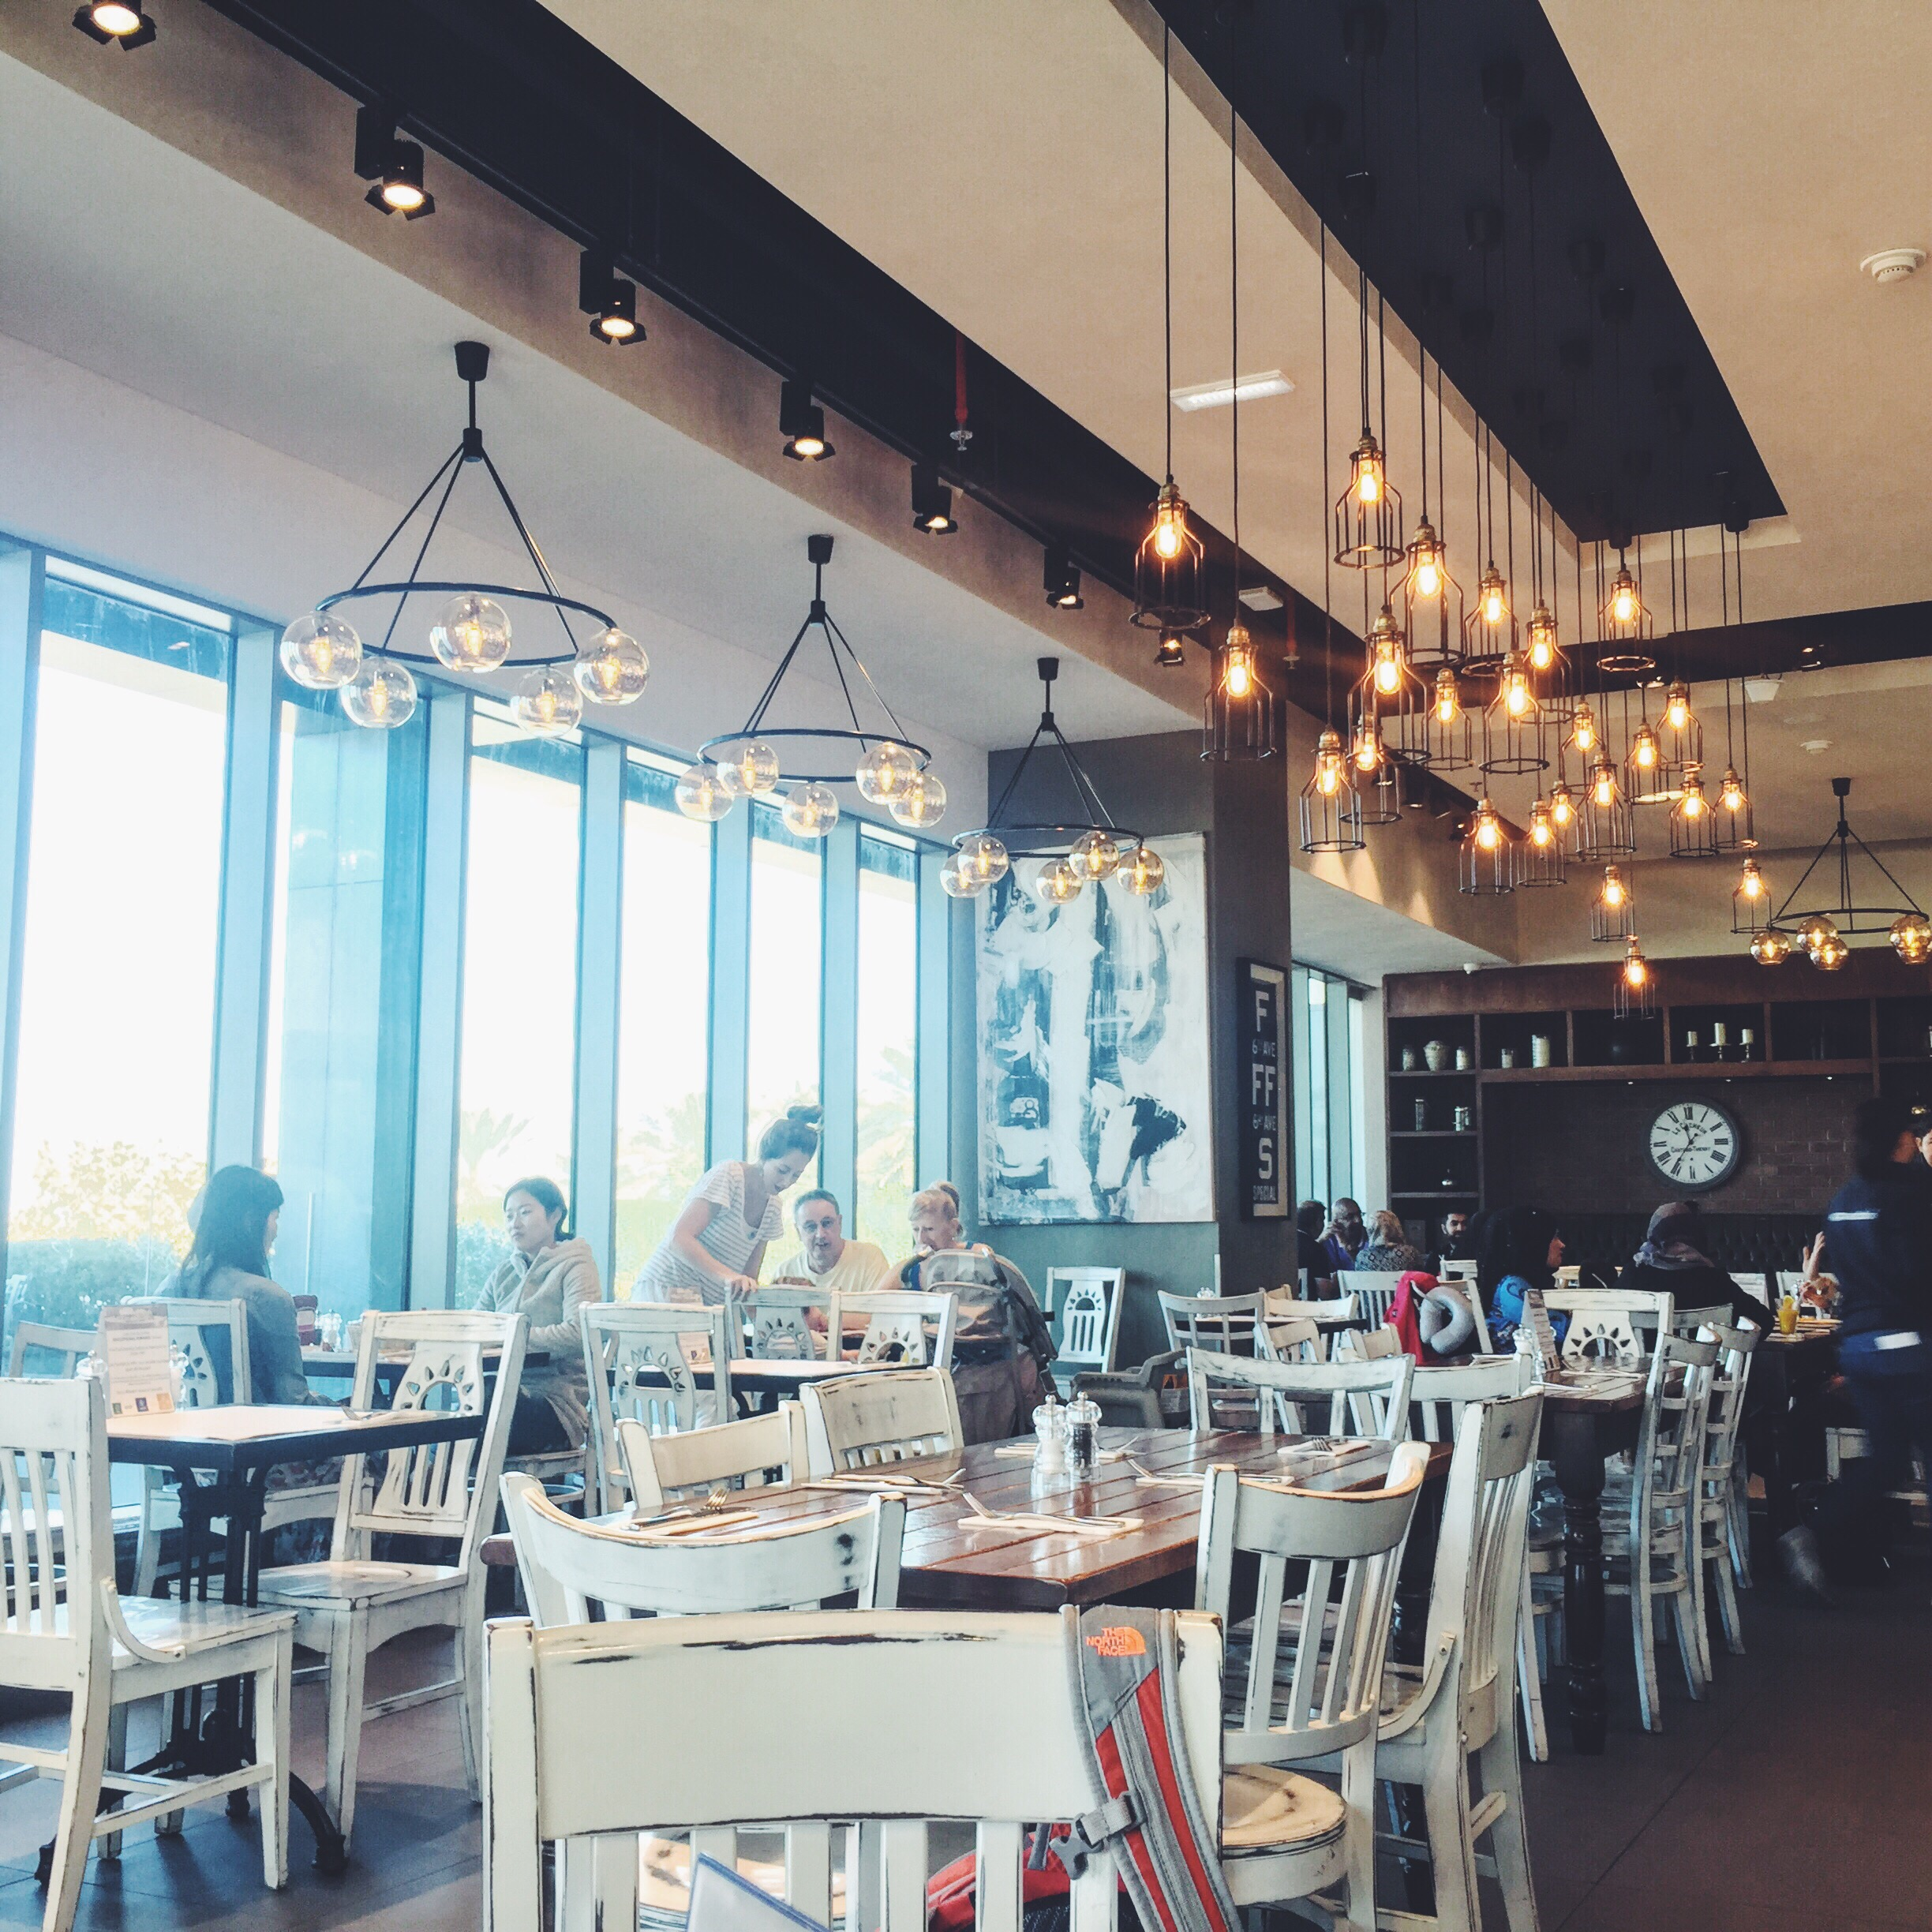 Eggspectation  cafe. Super cozy and friendly place to enjoy breakfast or brunch.